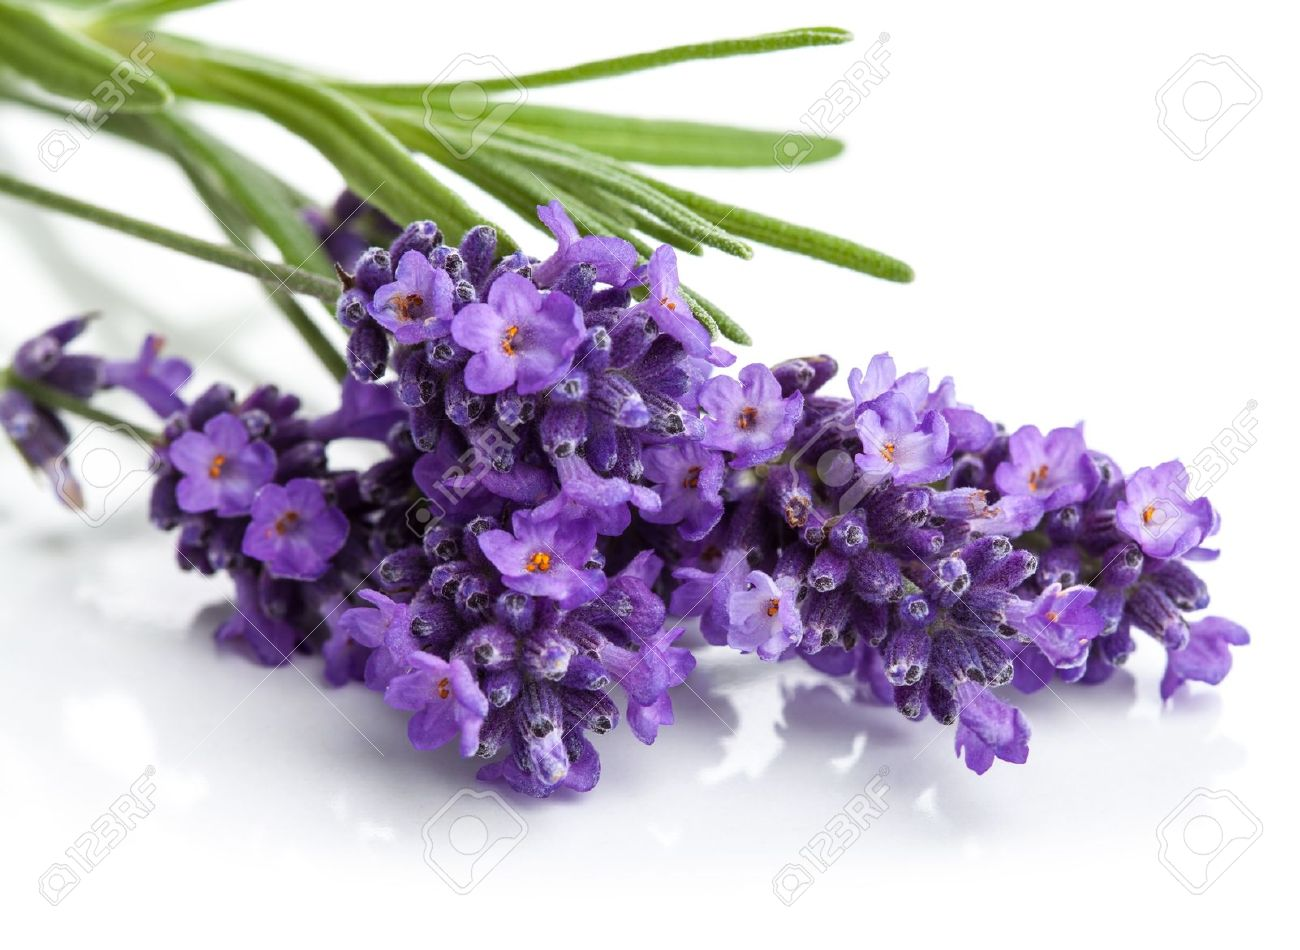 lavender flower stock photos  pictures. royalty free lavender, Natural flower